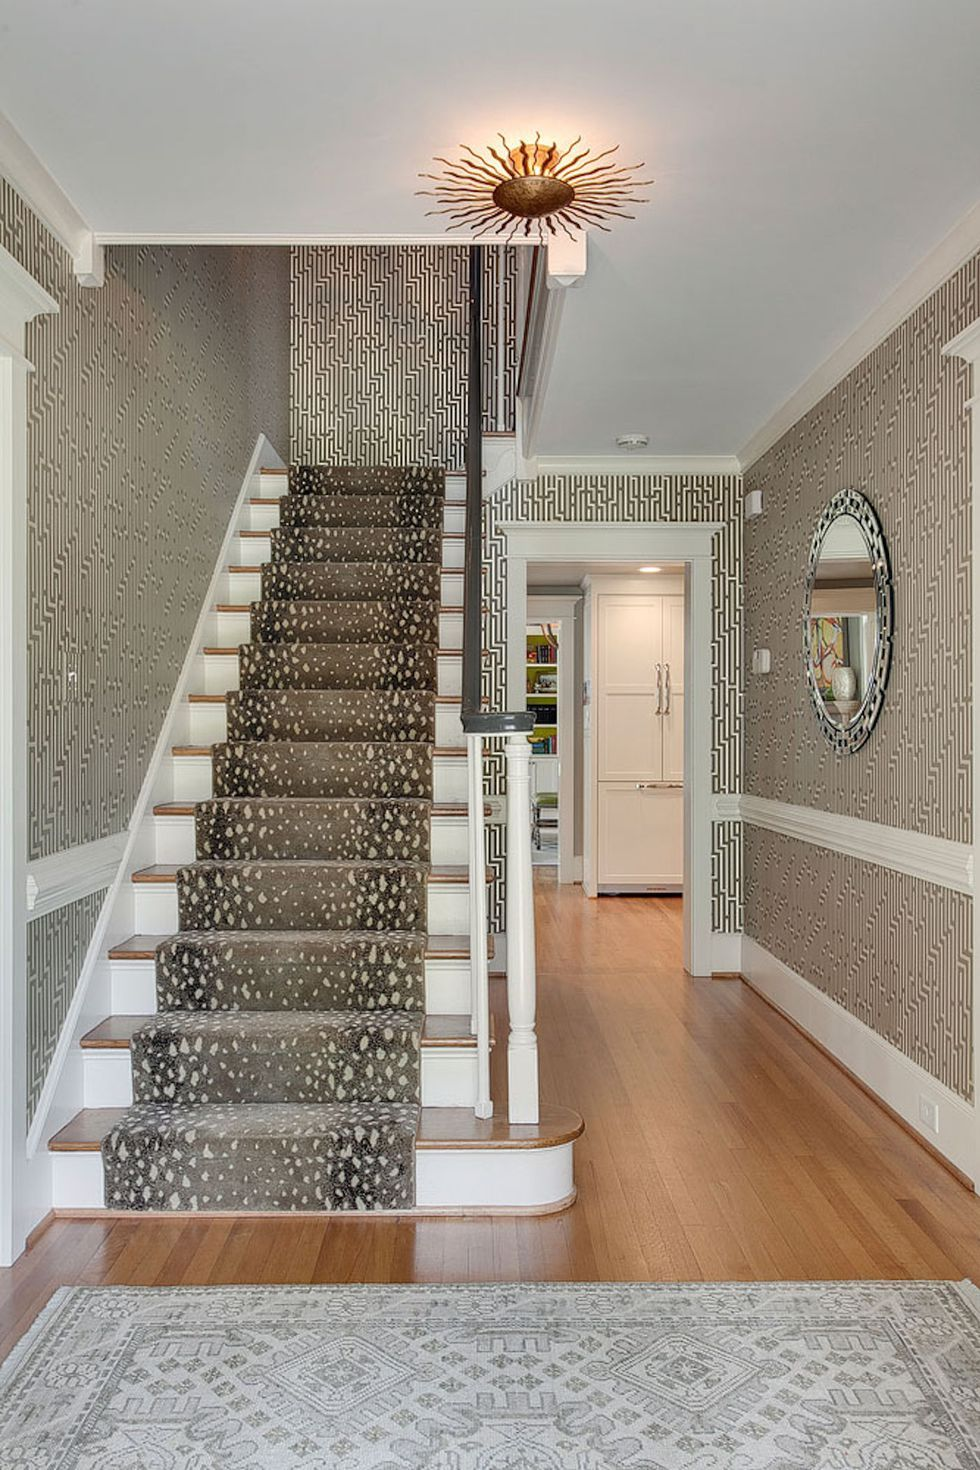 27 Stylish Staircase Decorating Ideas | Staircase wall ... on Creative Staircase Wall Decorating Ideas  id=65112